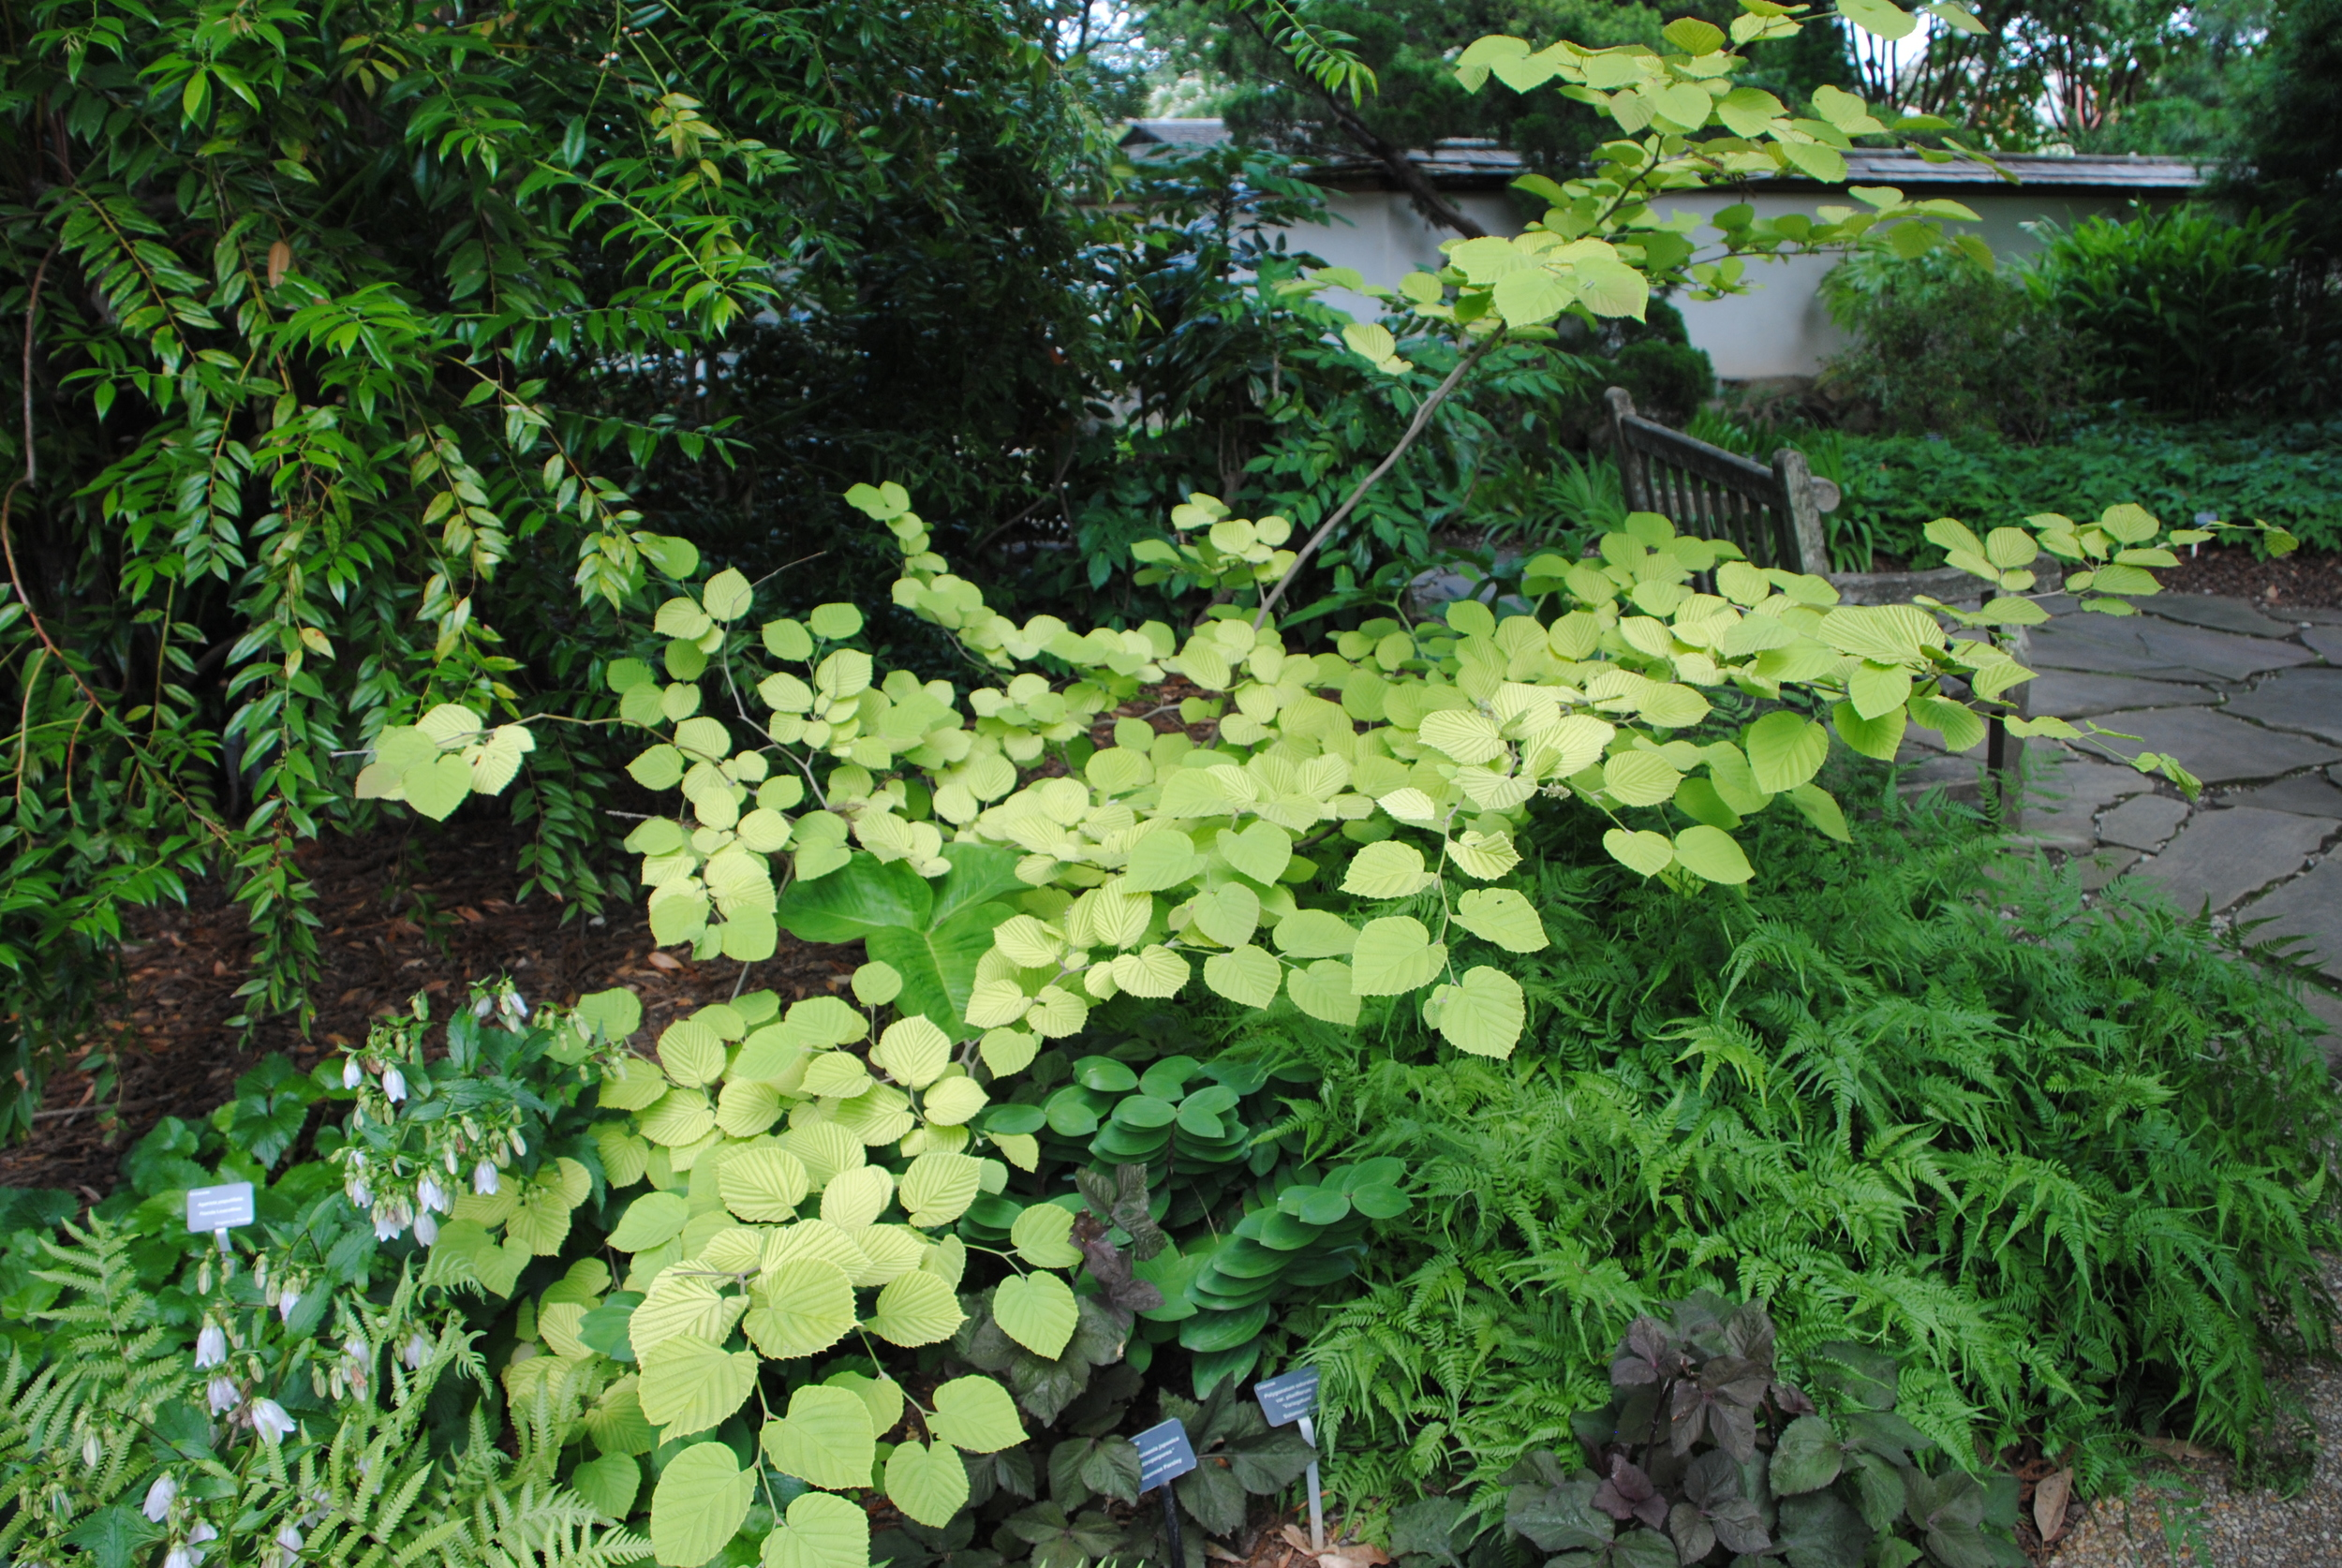 The yellow color in early summer blends well with the greens in a lightly shaded garden.